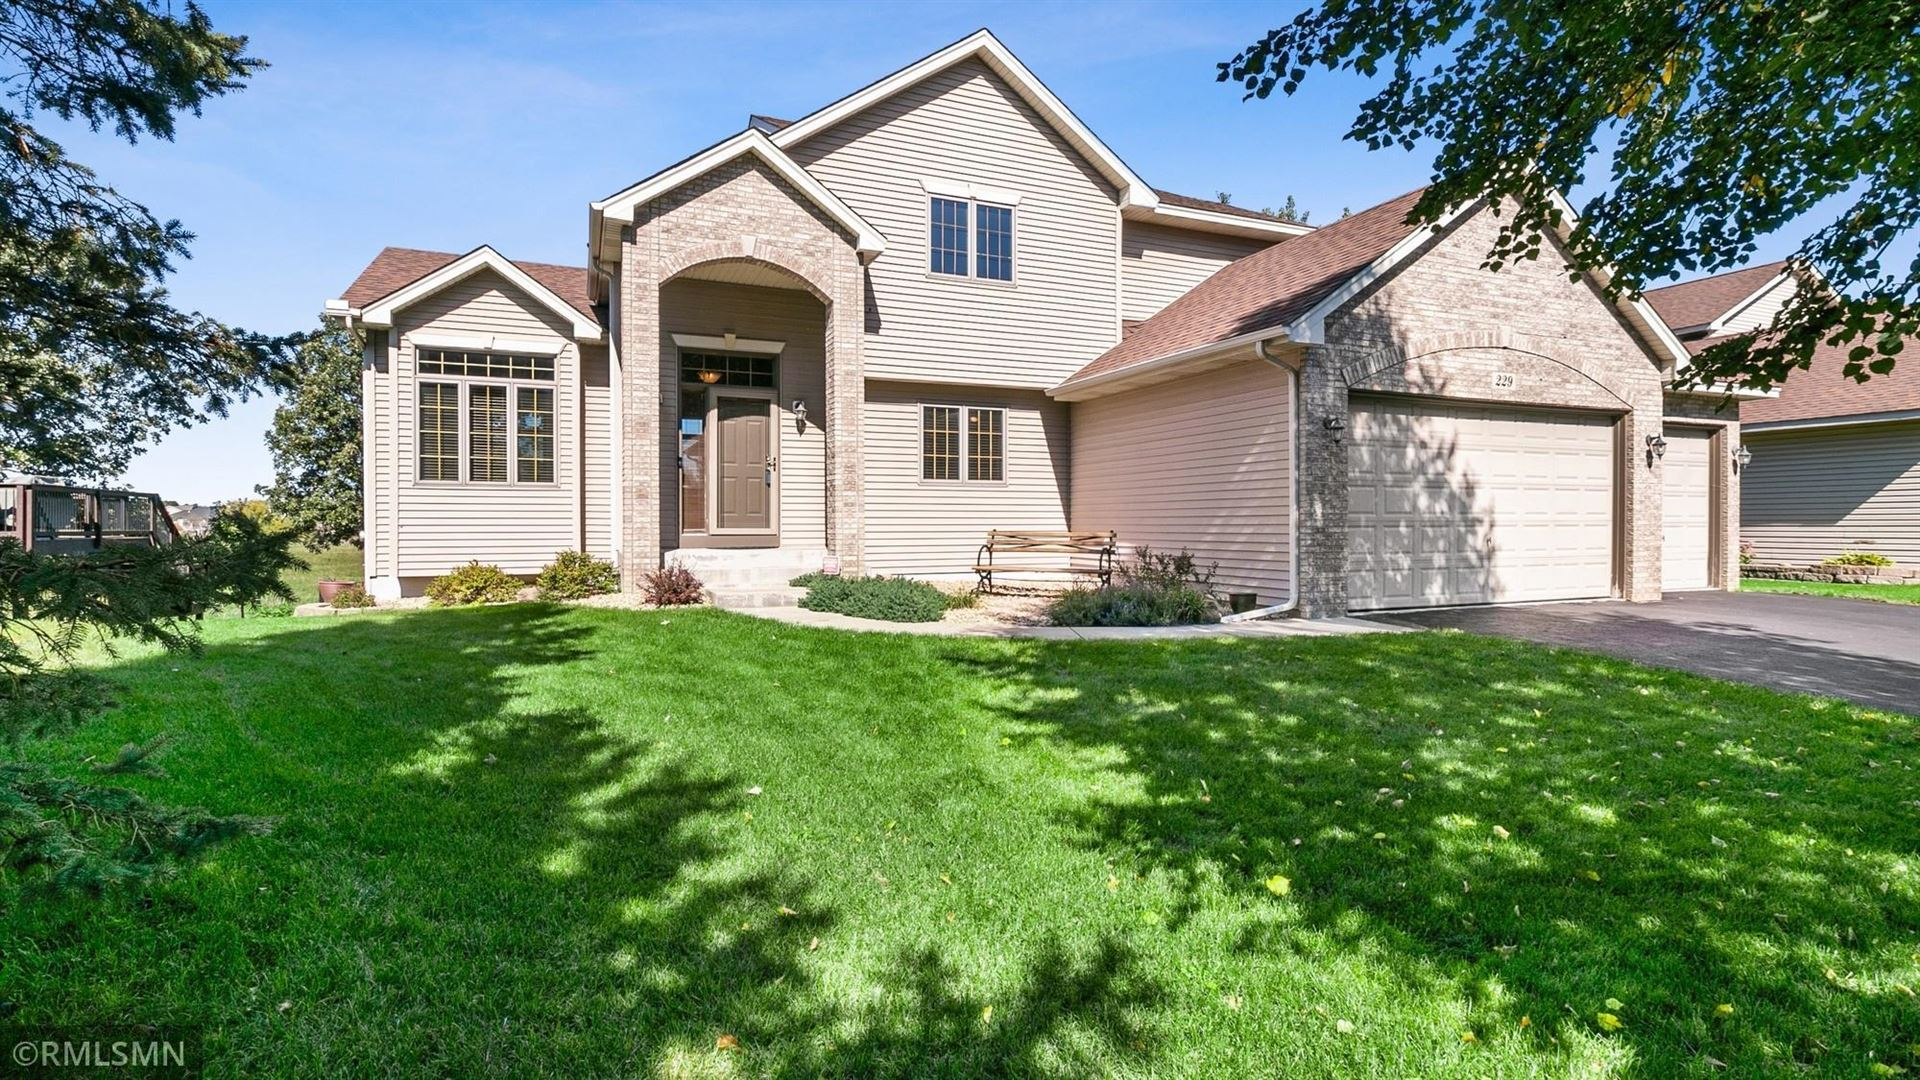 Photo of 229 141st Avenue NW, Andover, MN 55304 (MLS # 6103637)